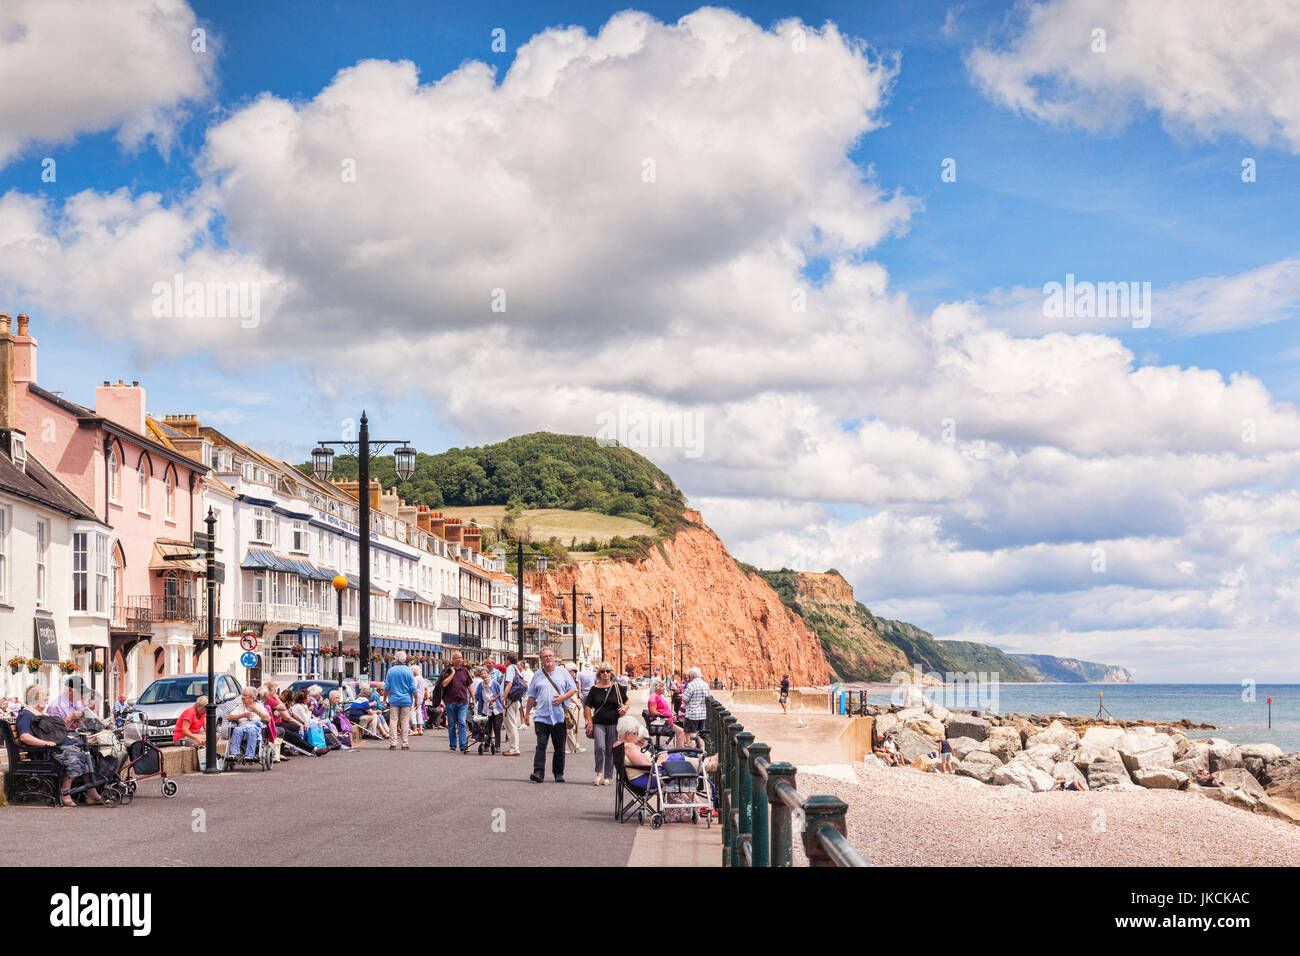 3 July 2017: Sidmouth, Dorset, England, UK - Visitors strolling on the promenade on a sunny summer day with blue - Stock Image